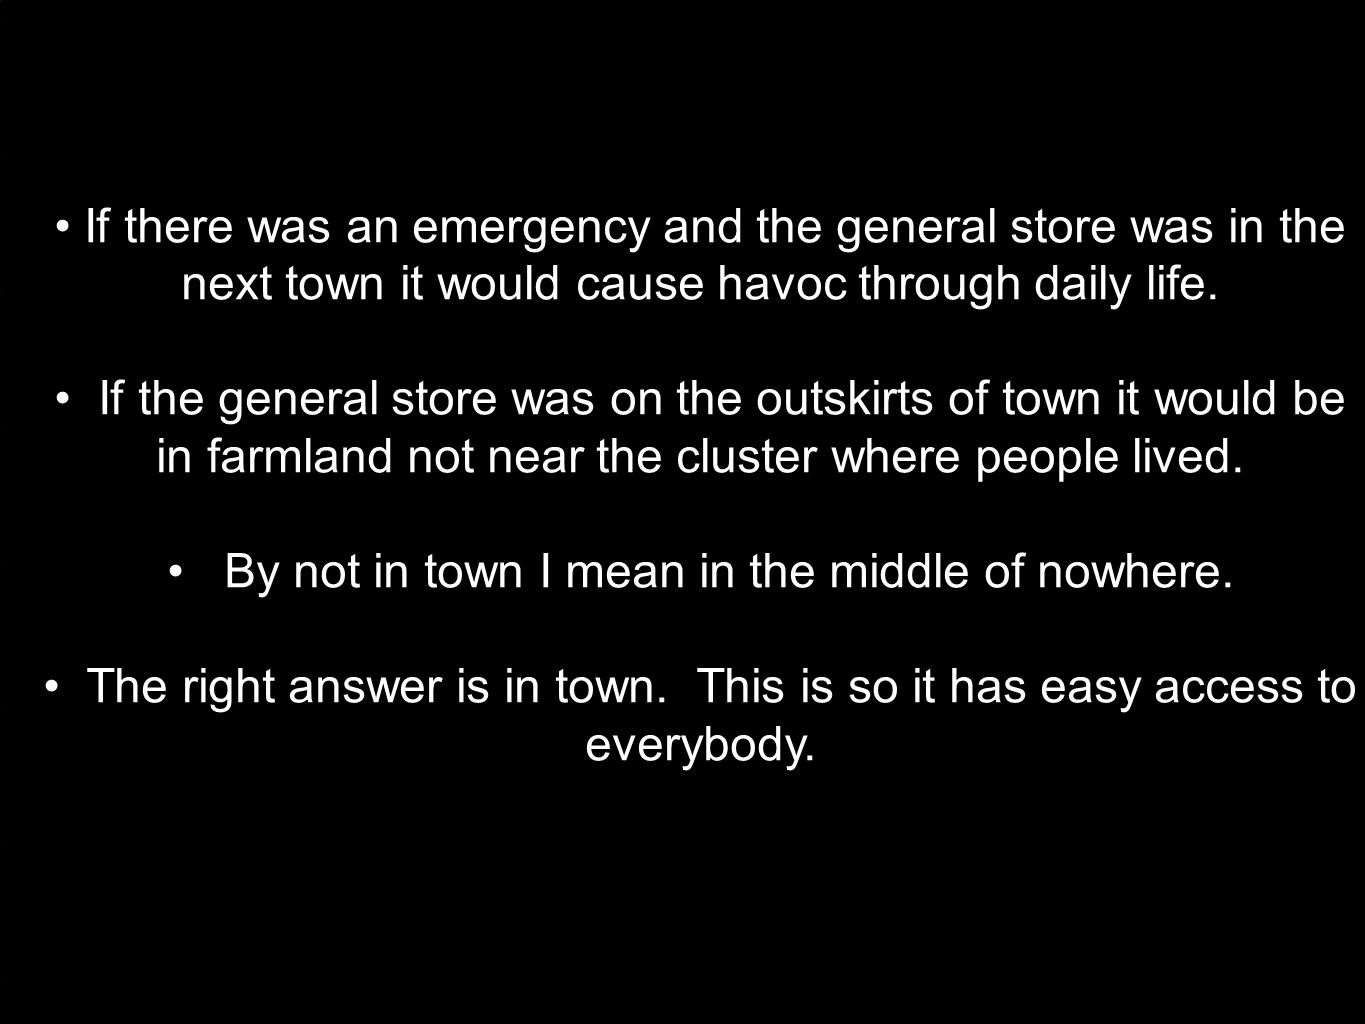 If there was an emergency and the general store was in the next town it would cause havoc through daily life.